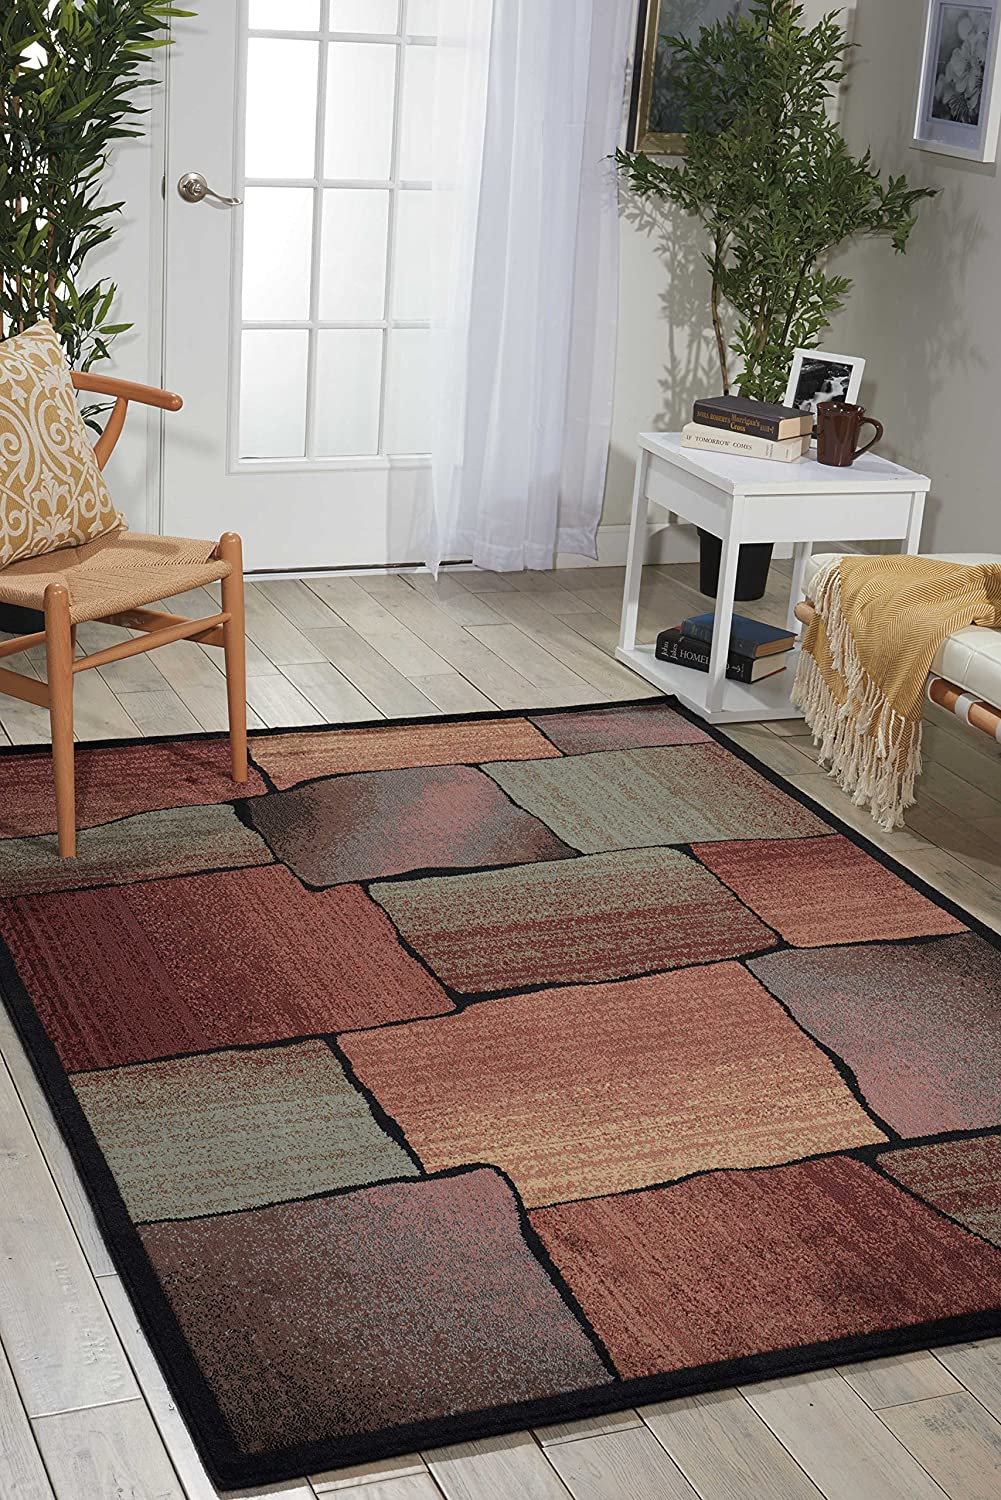 Nourison Expressions Multicolor Rectangle Area Popular popular Rug Super beauty product restock quality top 3-Feet 6-Inc